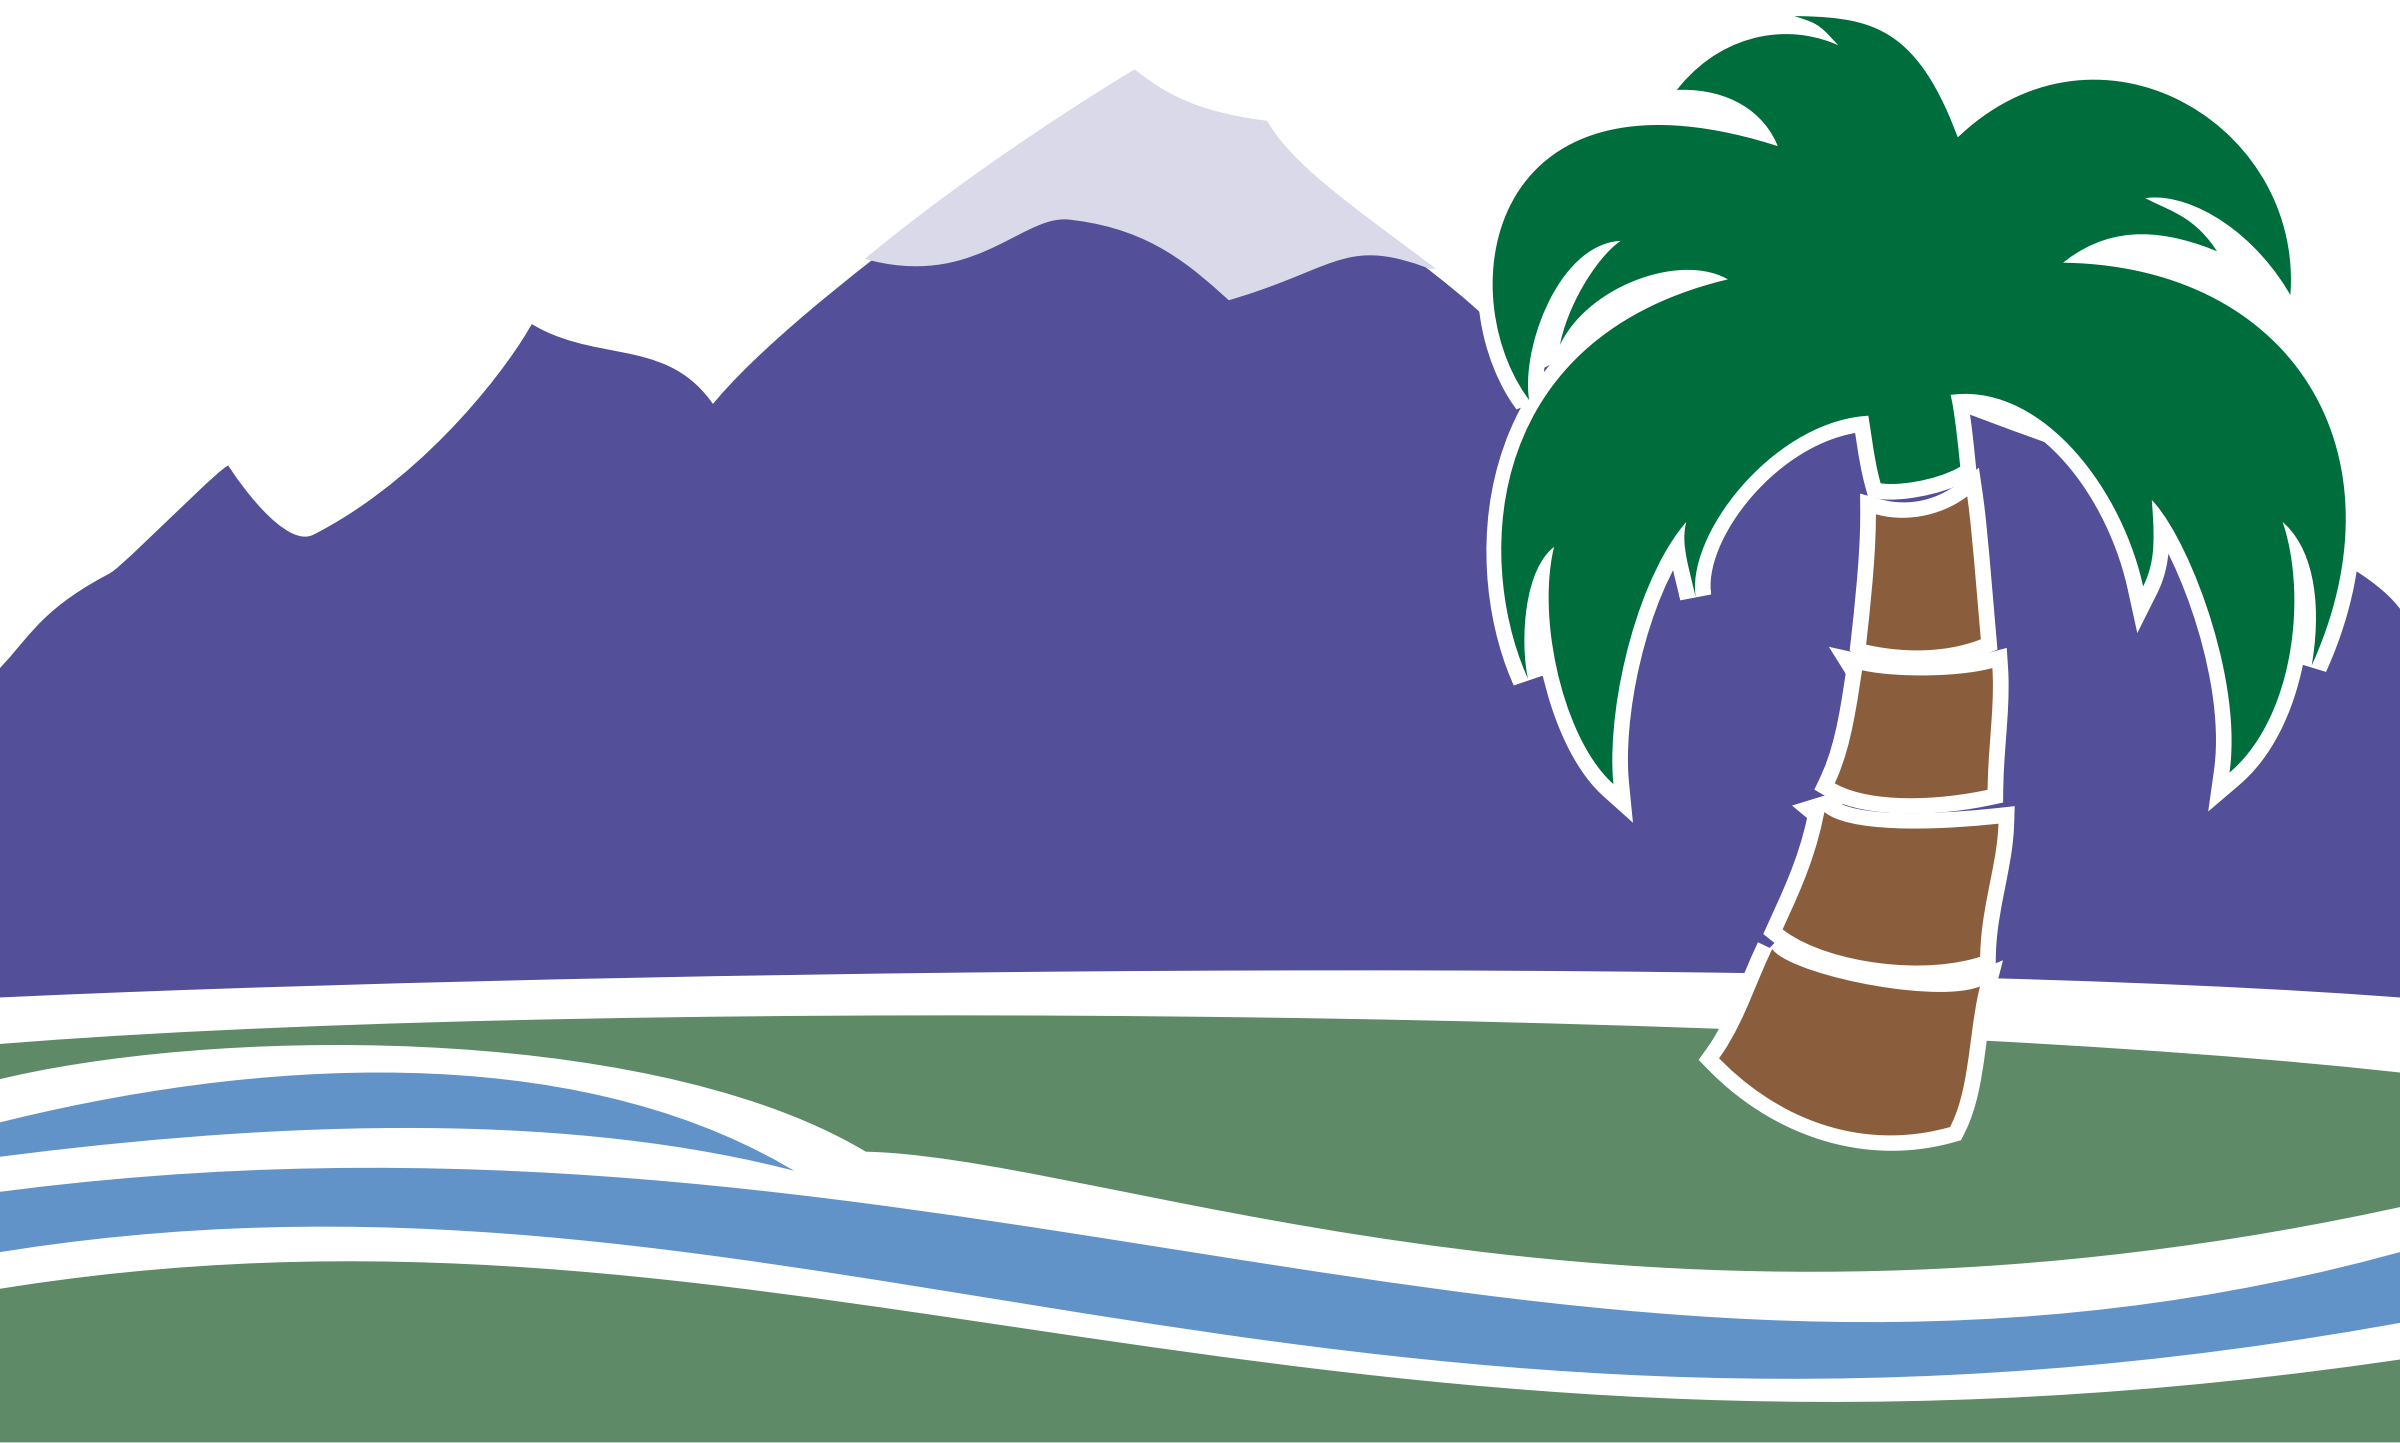 Landscape at getdrawings com. Clipart mountains desert